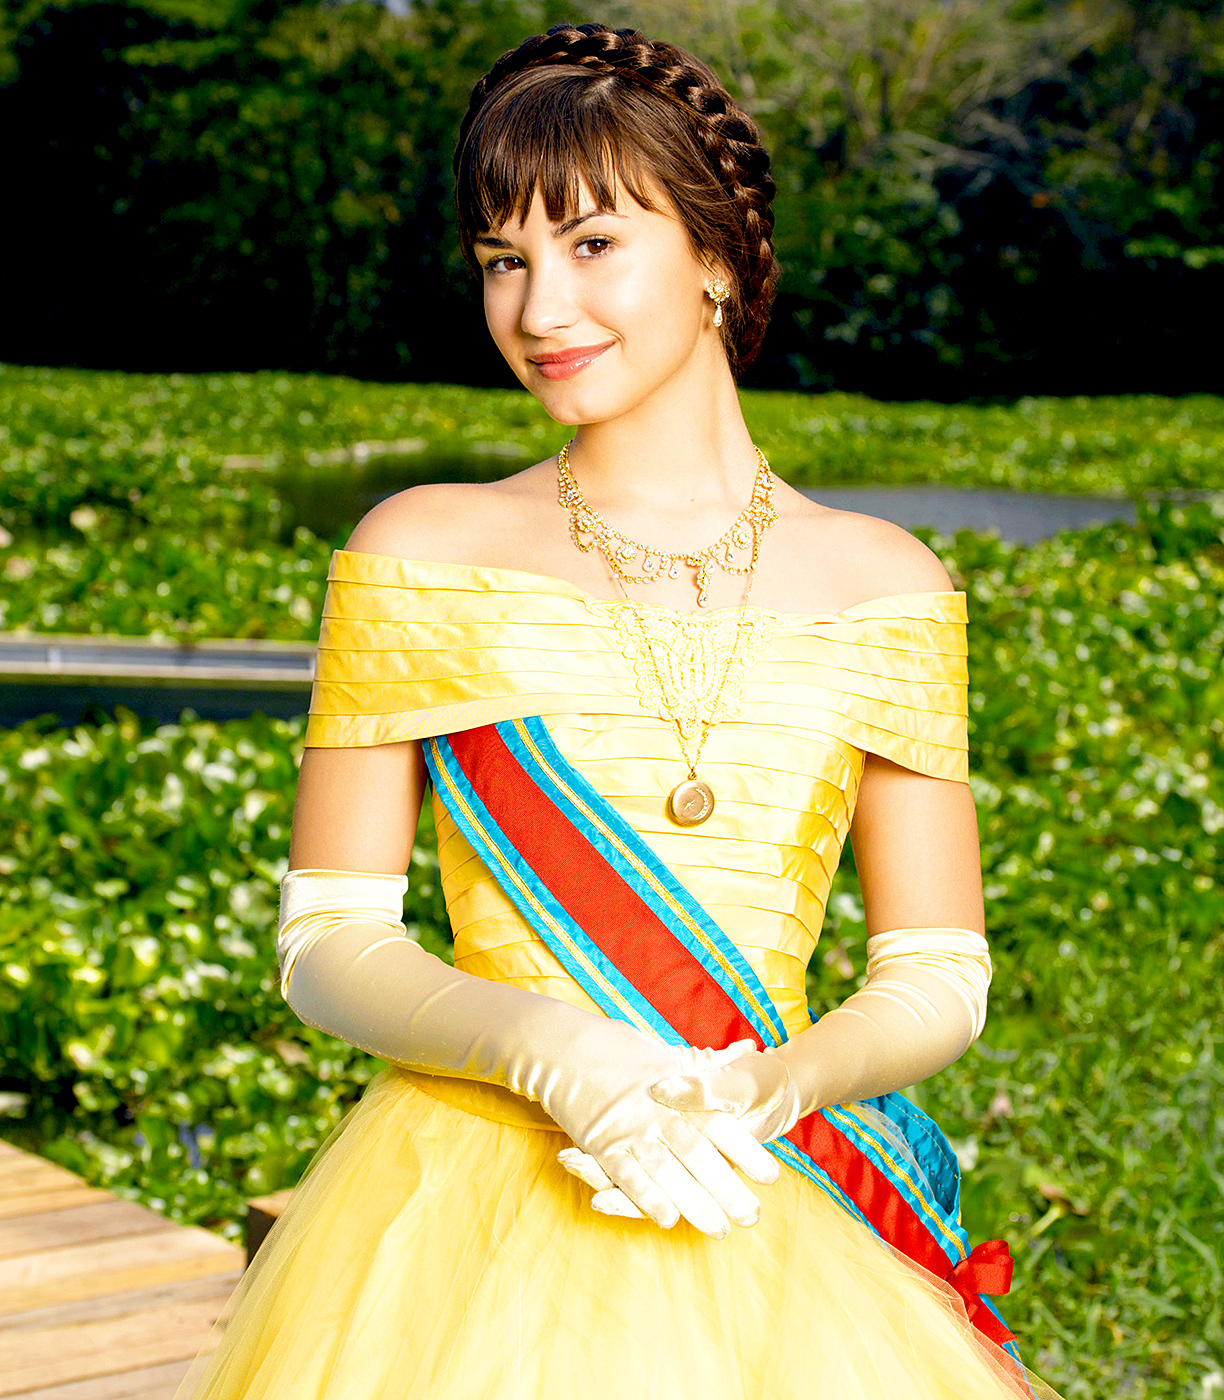 Lovato starred alongside her former BFF Gomez in 2009's Princess Protection Program, and the combo proved to be pure movie magic: Nearly 8.5 million viewers tuned in to see the Disney Channel original movie's premiere.